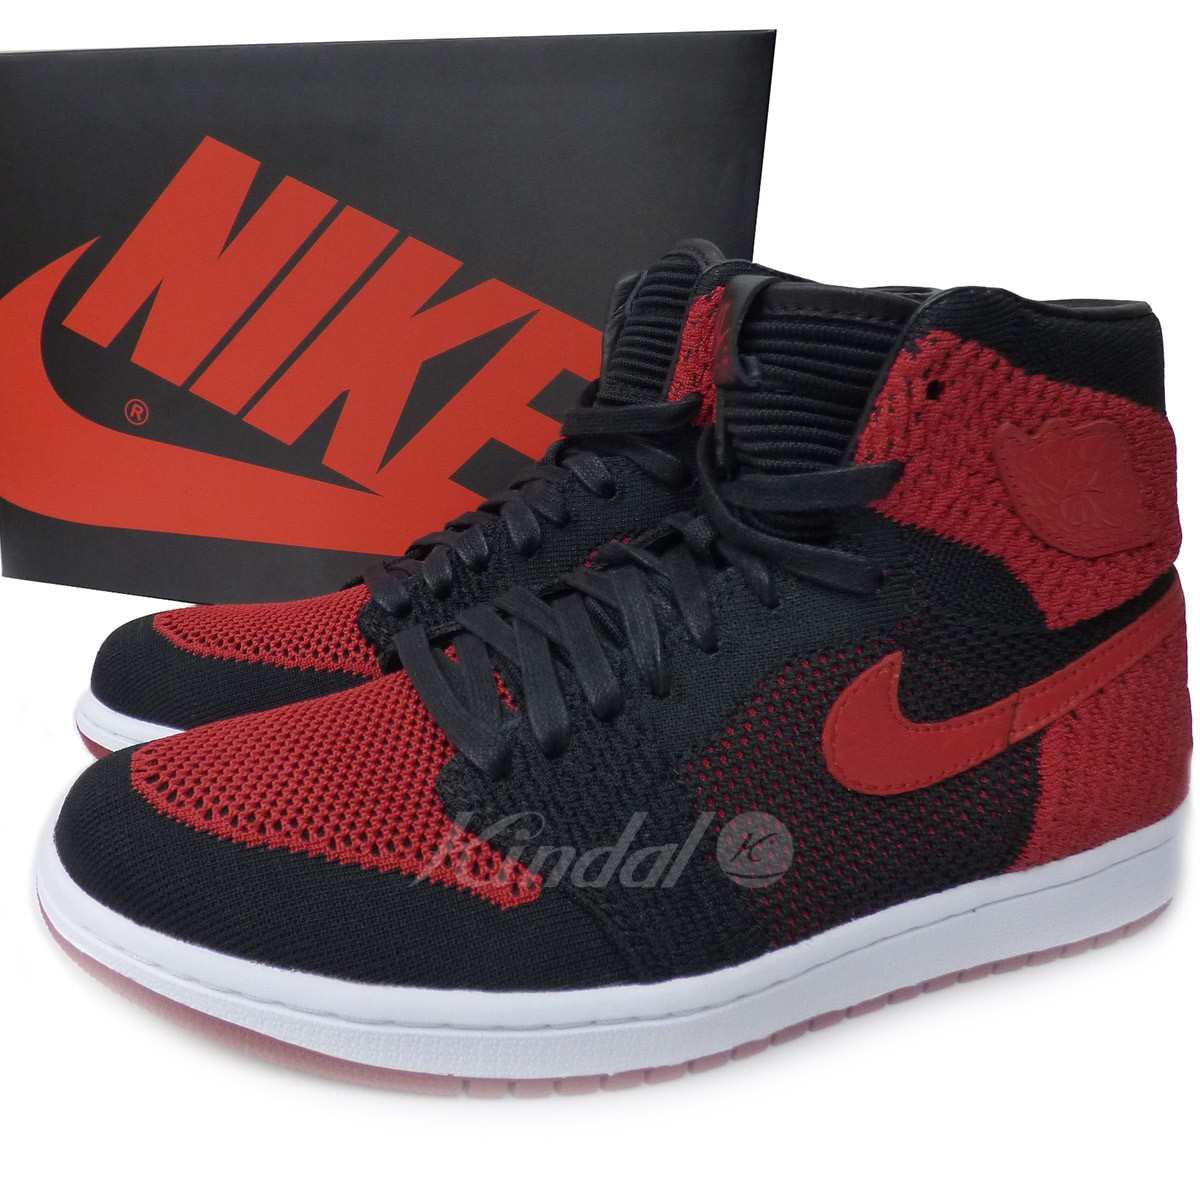 b28651d72a0e43 NIKE AIR JORDAN 1 RETRO HIGH FLYKNIT BANNED Jordan 1 バーンド red black size  26  5cm (Nike)